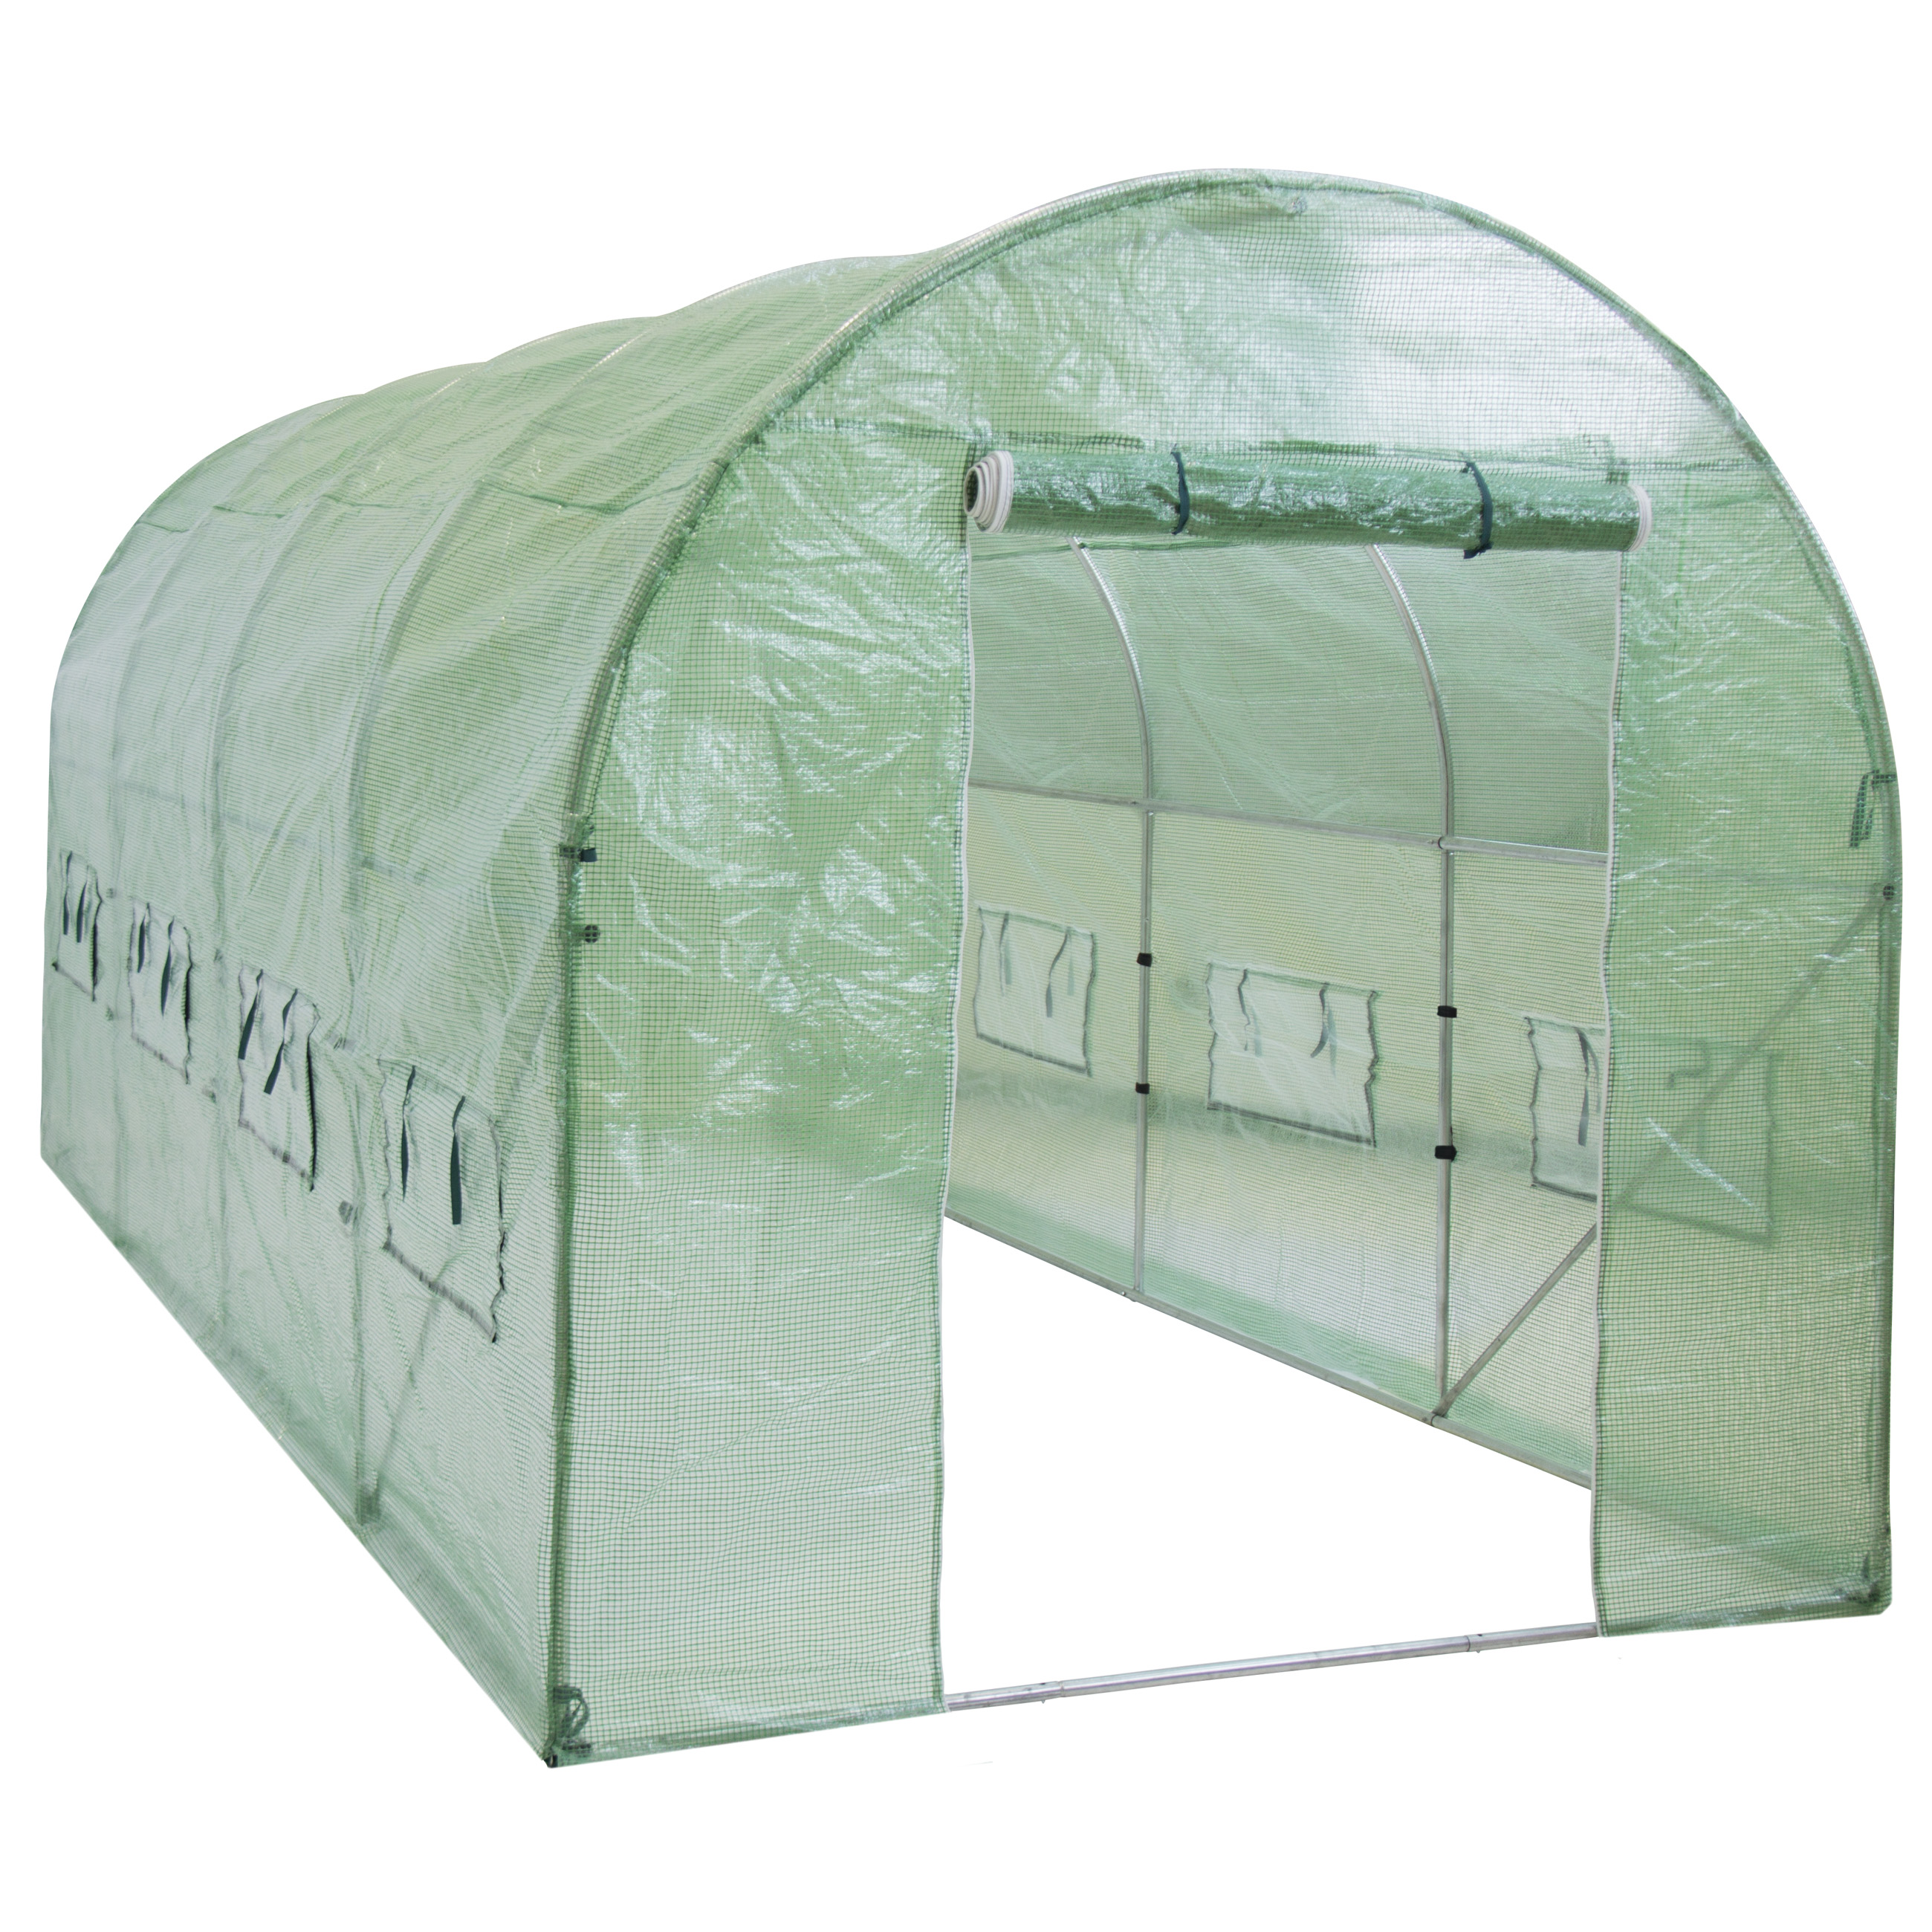 Greenhouse 15'x7'x7' Larger Walk In Tunnel Green House Garden Plant